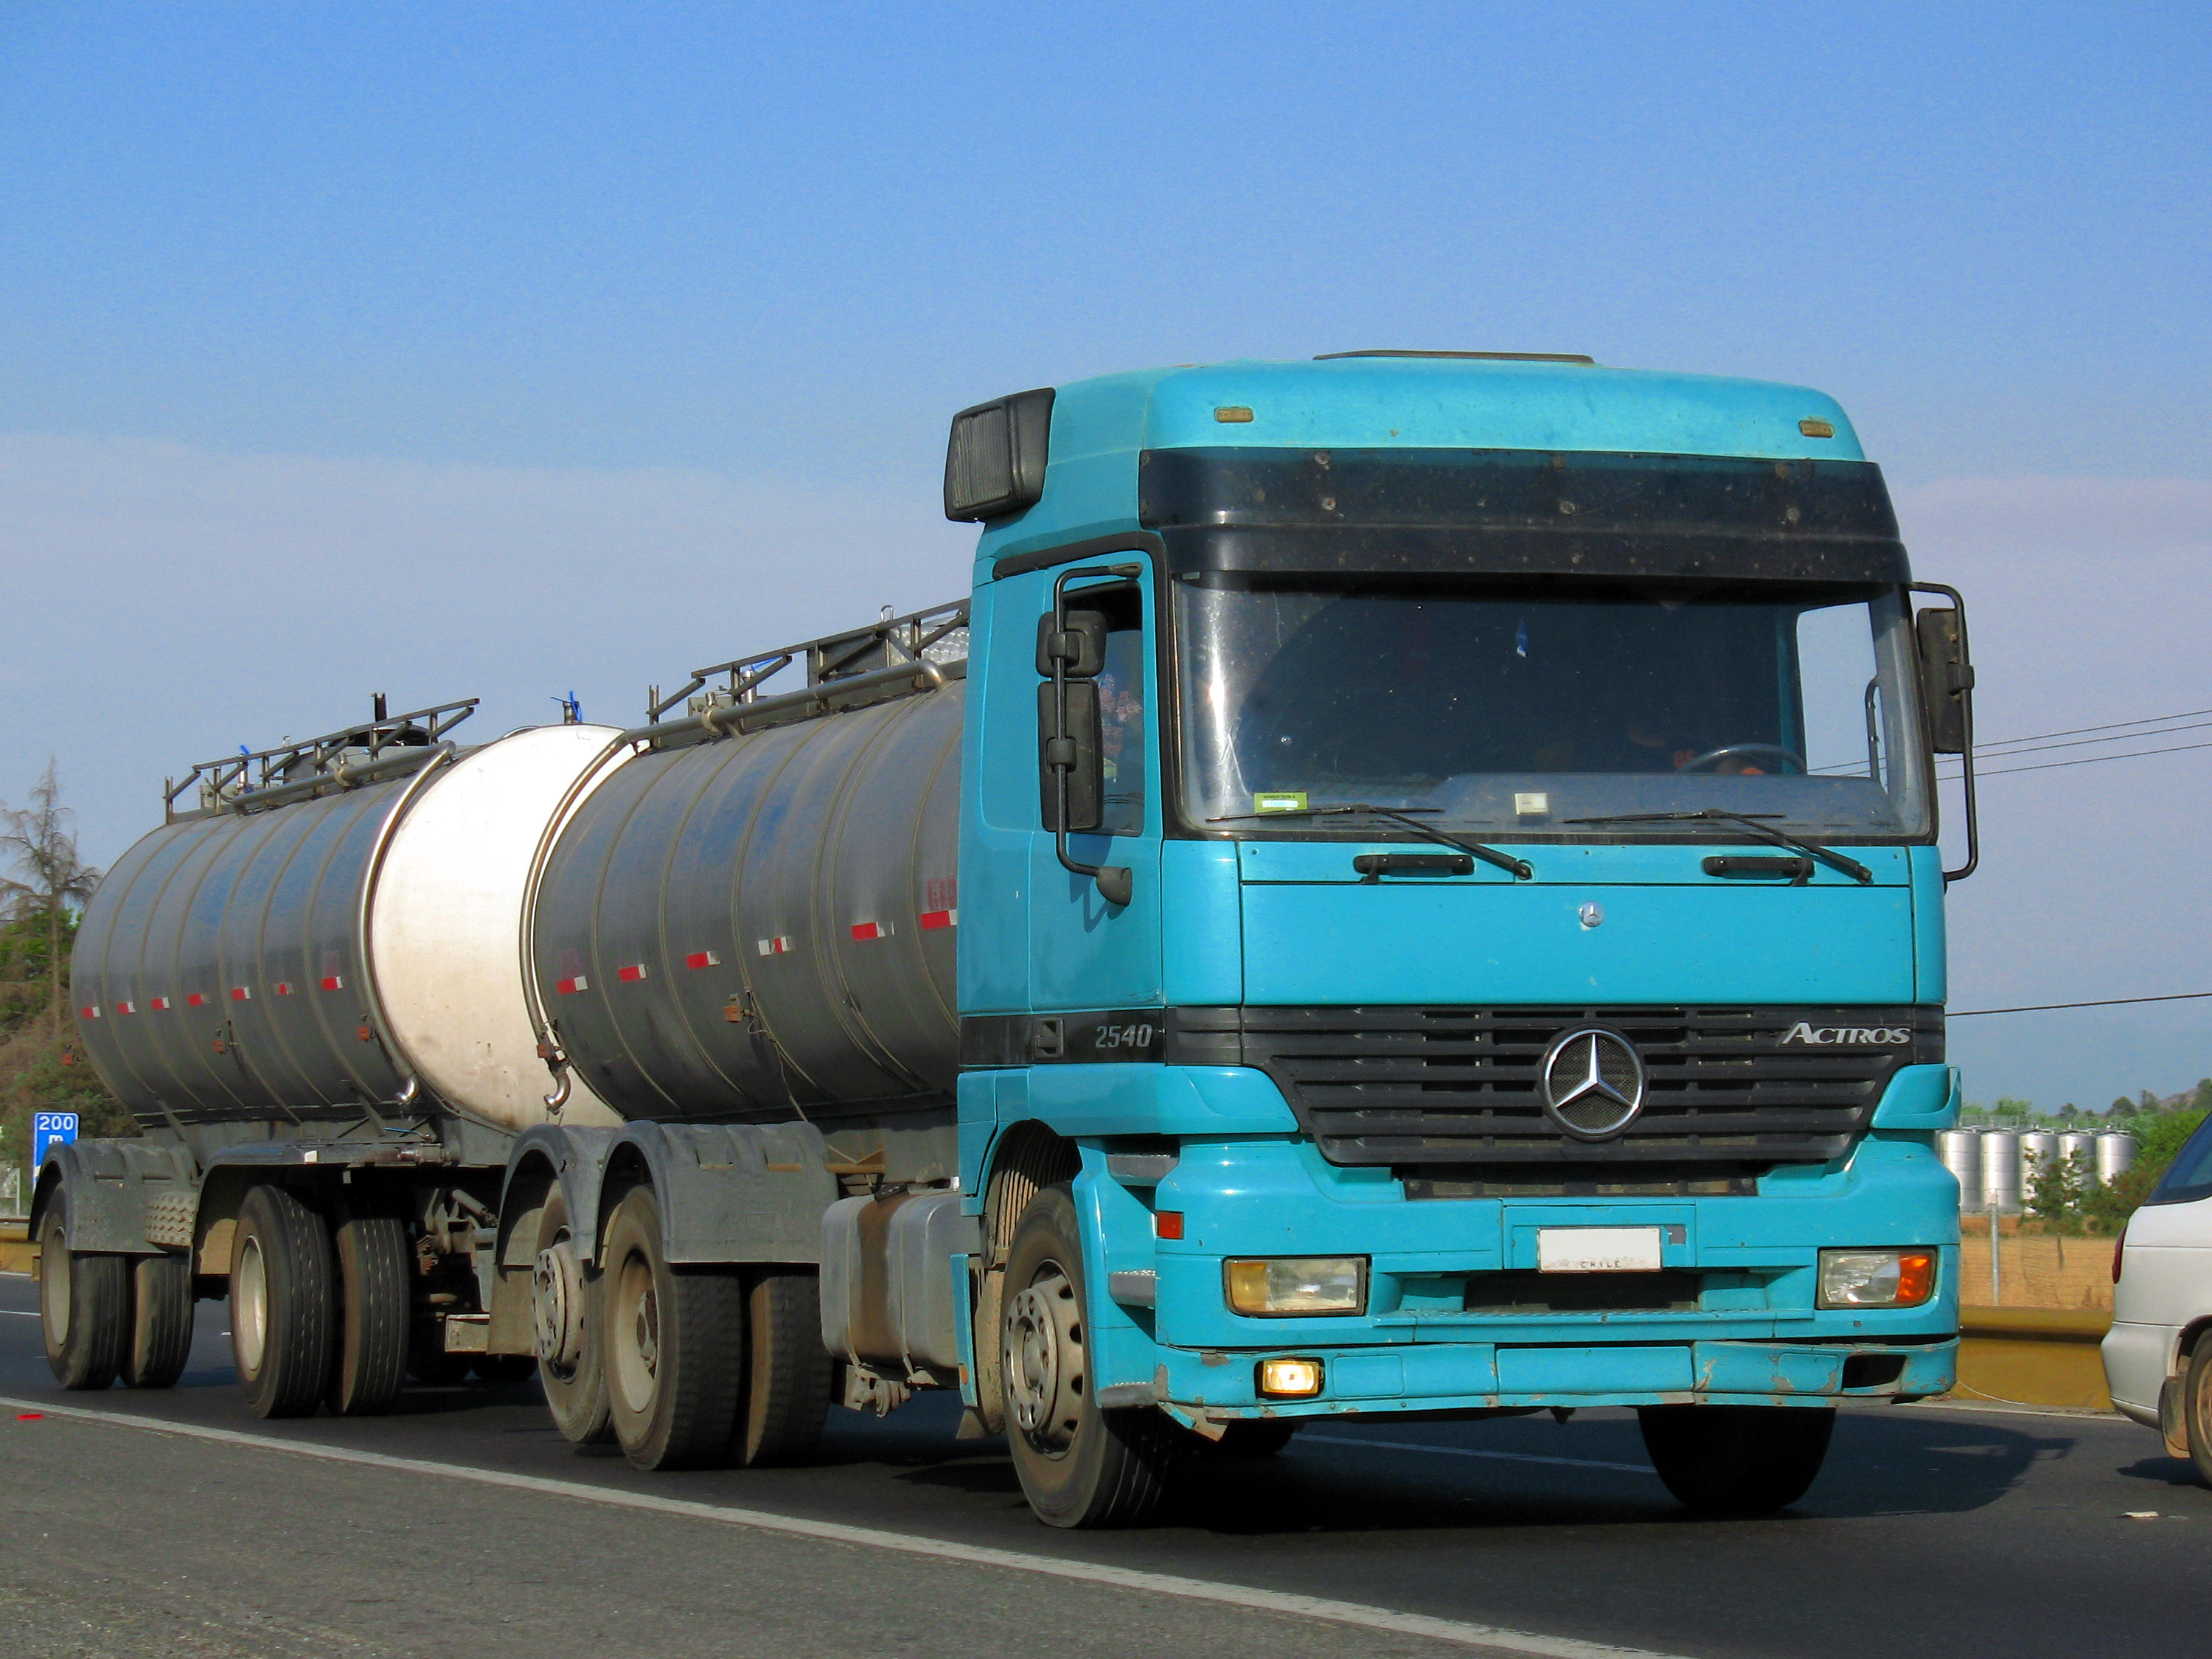 File:Mercedes Benz Actros 2540 1998 (14400340614).jpg